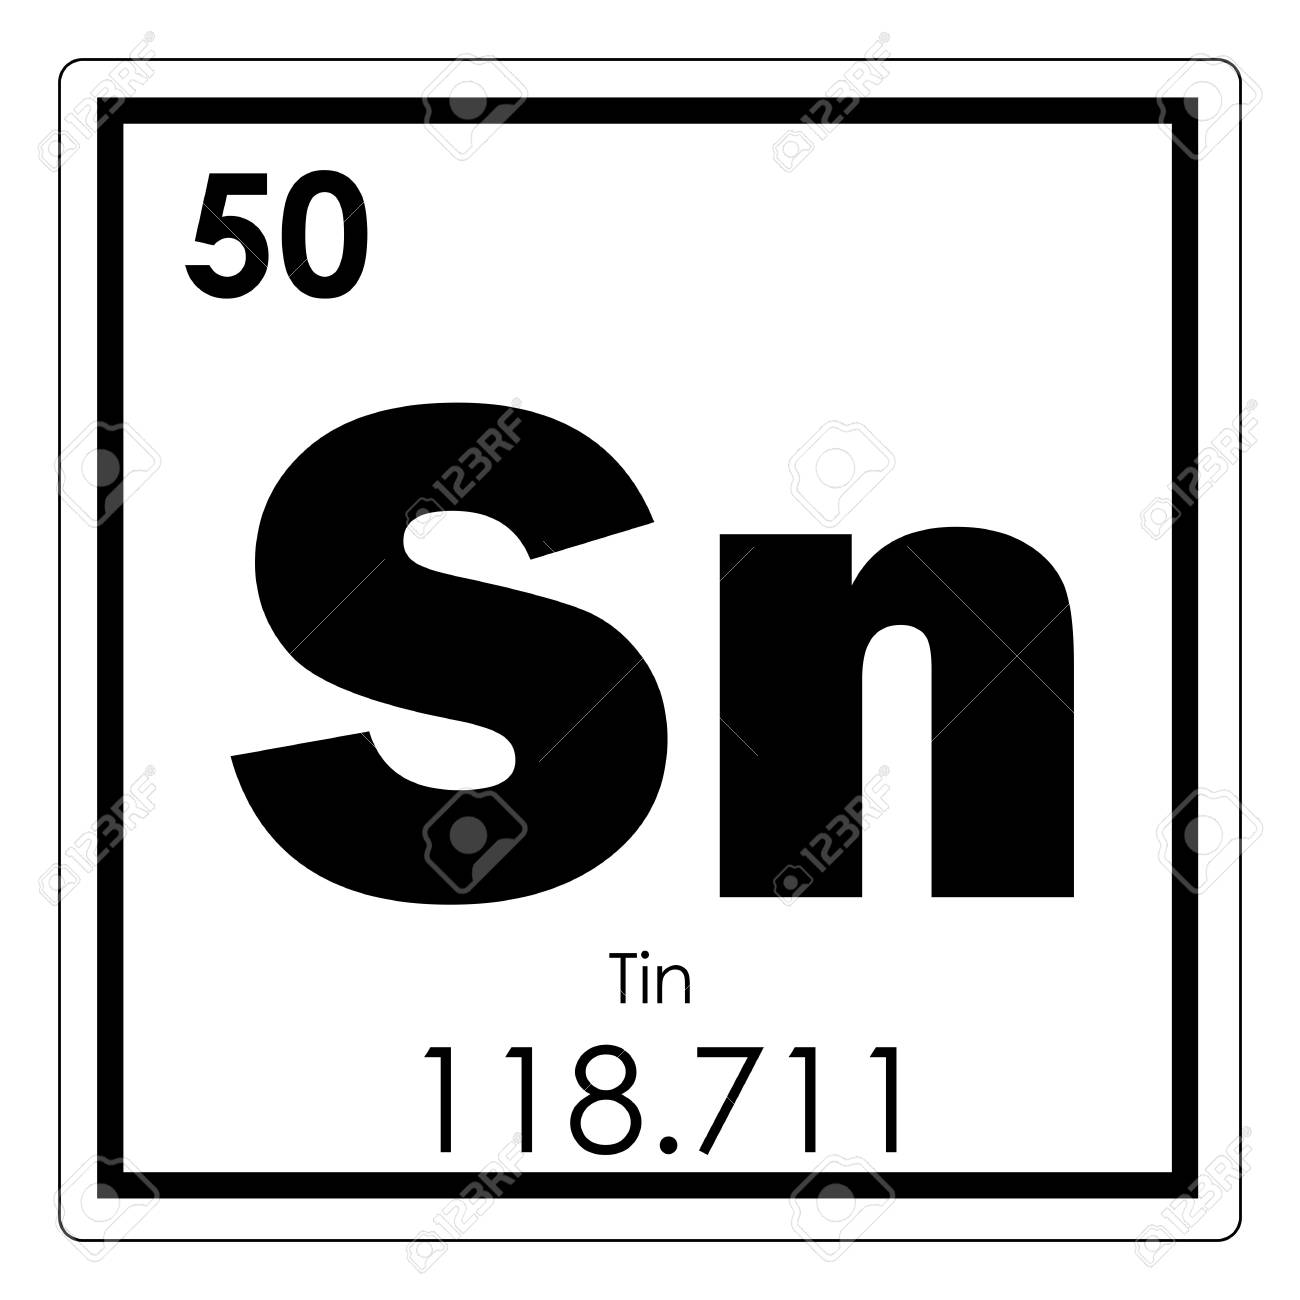 Tin chemical element periodic table science symbol stock photo stock photo tin chemical element periodic table science symbol urtaz Gallery